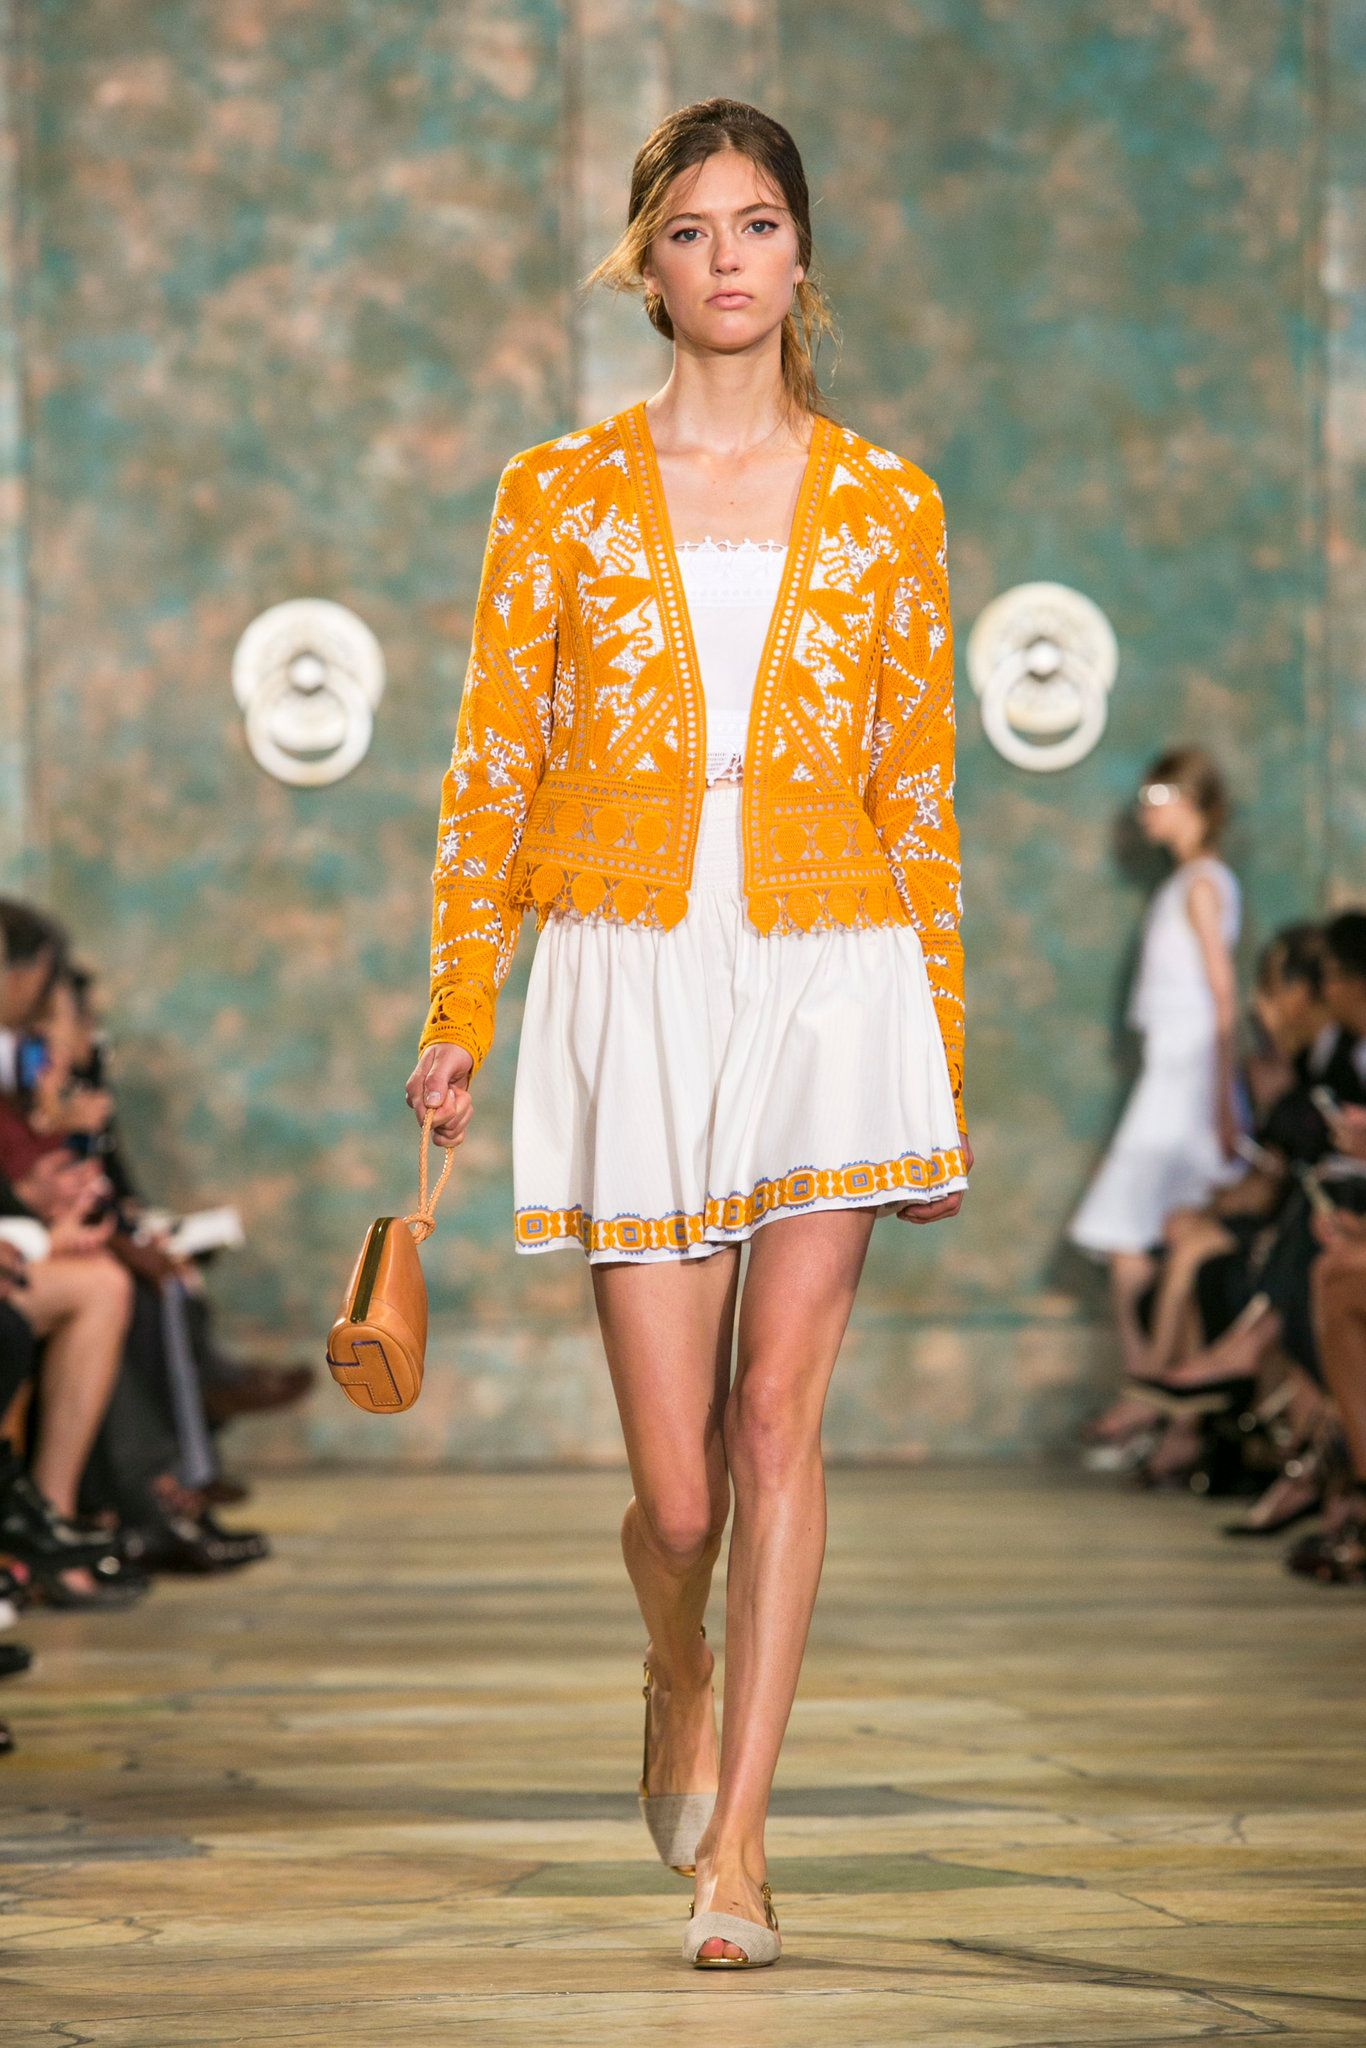 862bc90e336 A look from Tory Burch s spring summer 2016 show at New York Fashion Week.  (Photo  Gio Staiano Nowfashion)